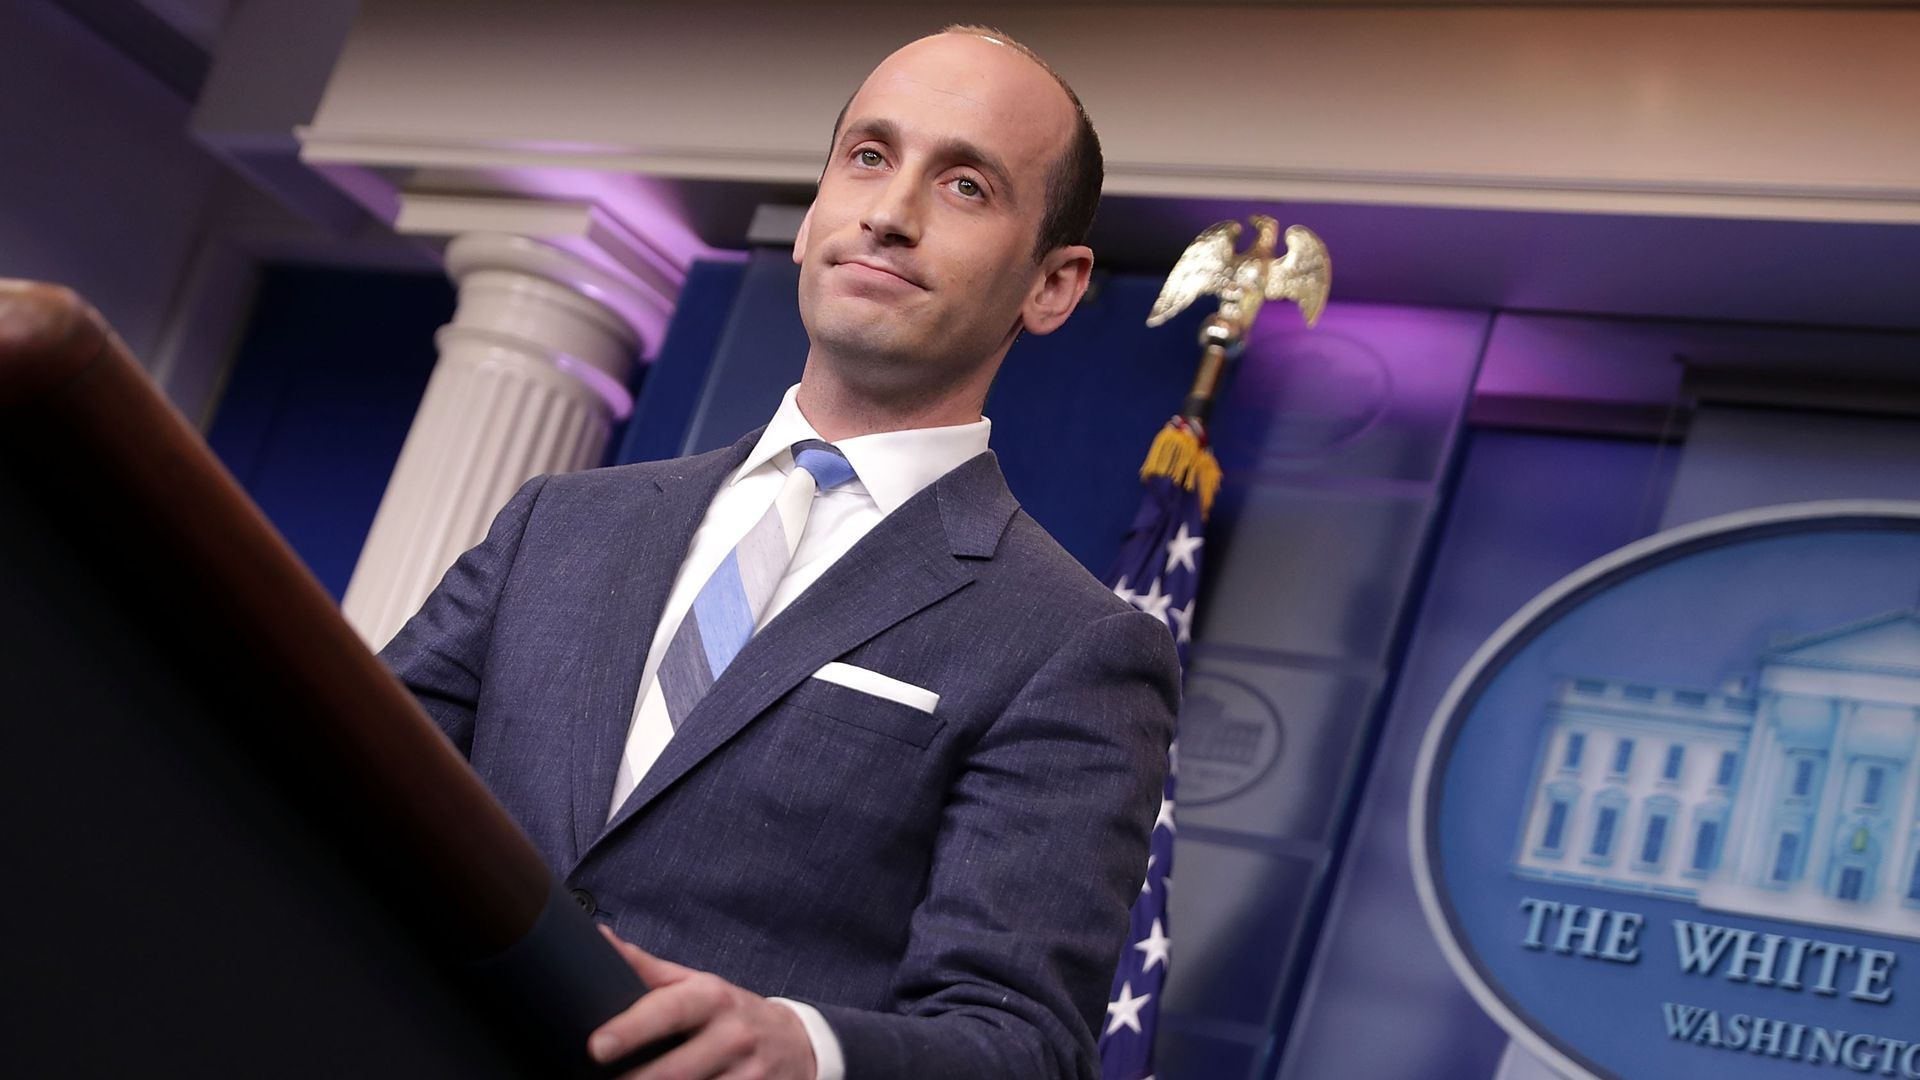 Stephen Miller at the White House podium